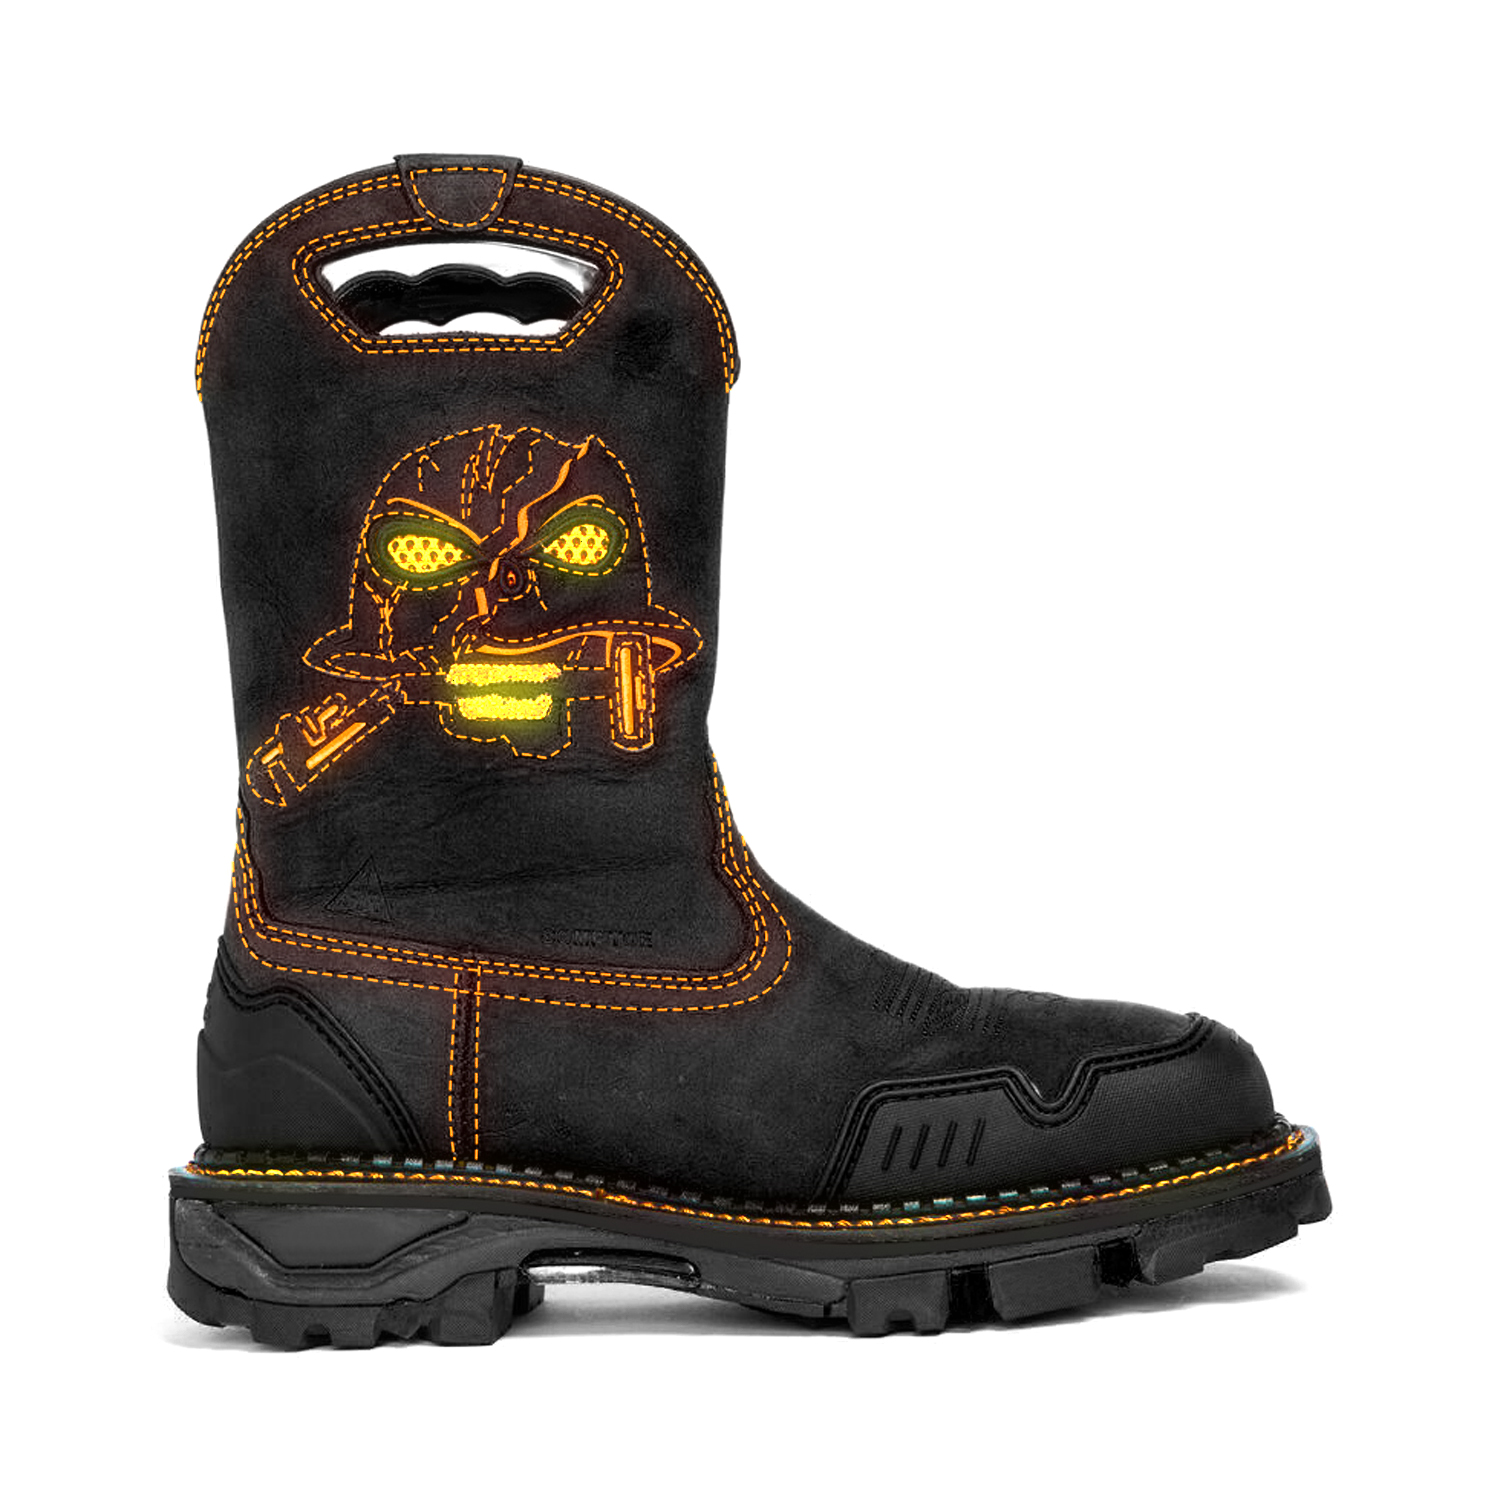 (🛒The Last Day! 50% Off🤣) Men's Black&Green Psychic Skull Western Boots